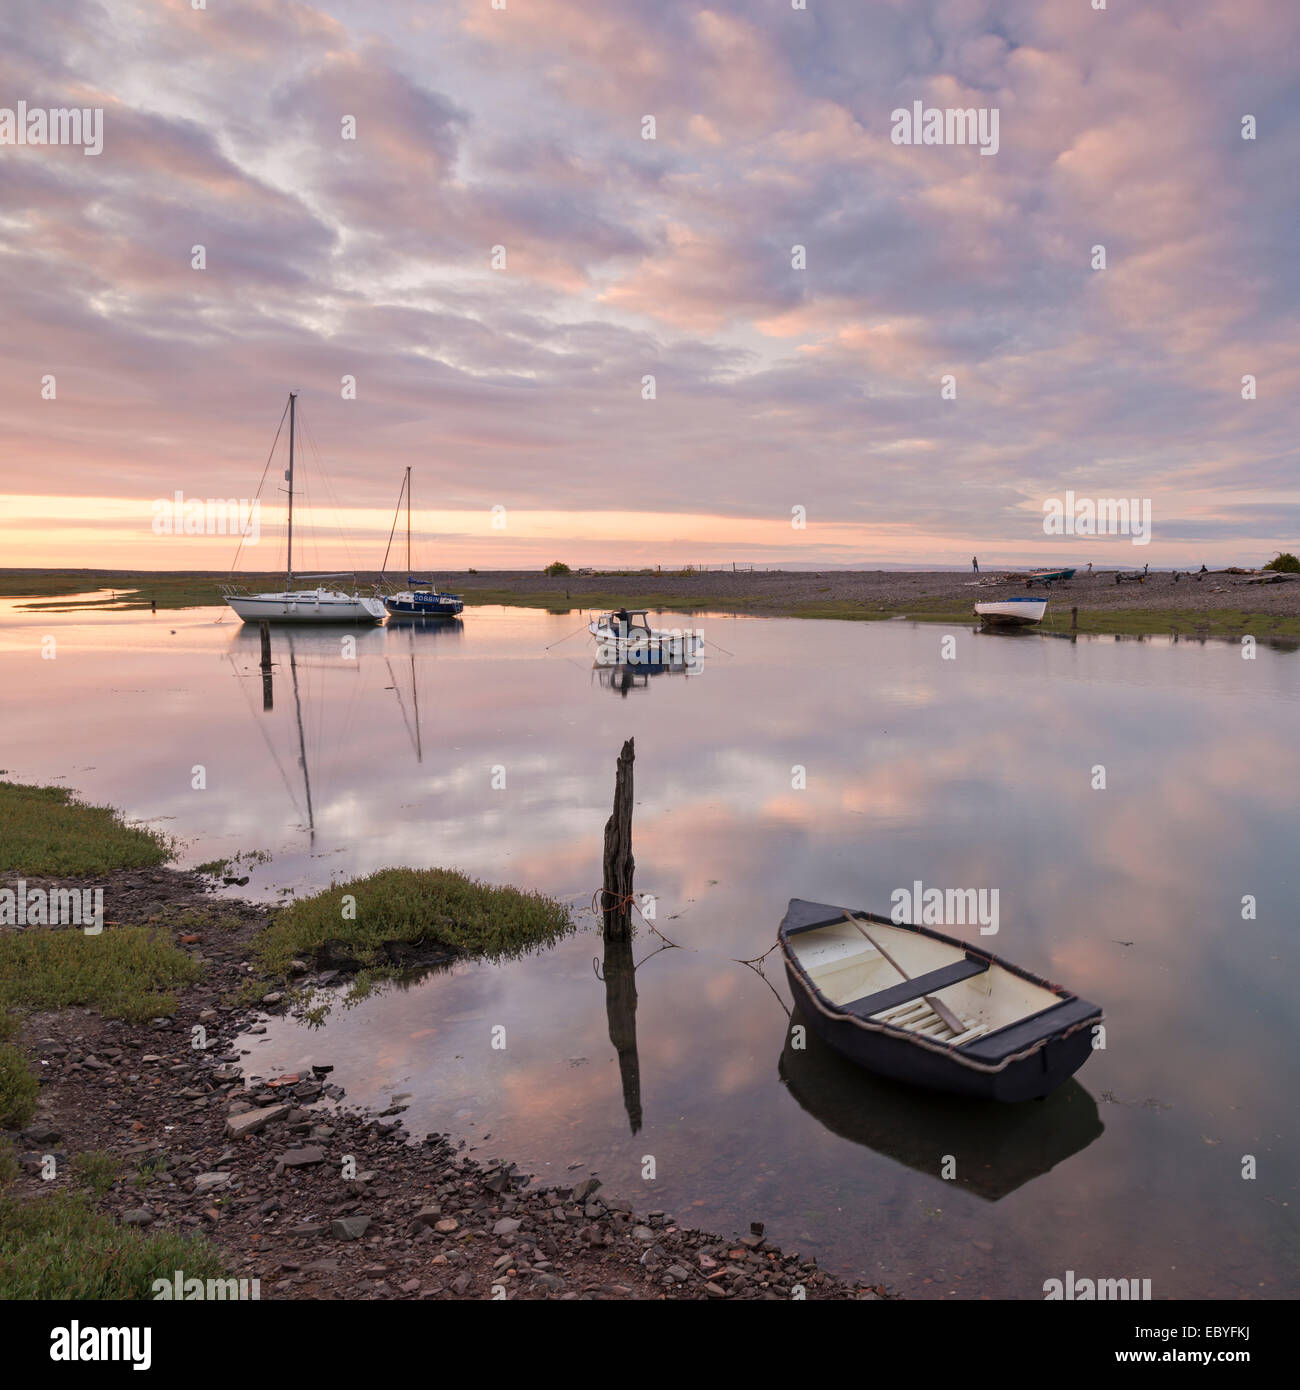 Boats in Porlock Weir at sunset, Exmoor, Somerset, England. Summer (July) 2014. - Stock Image